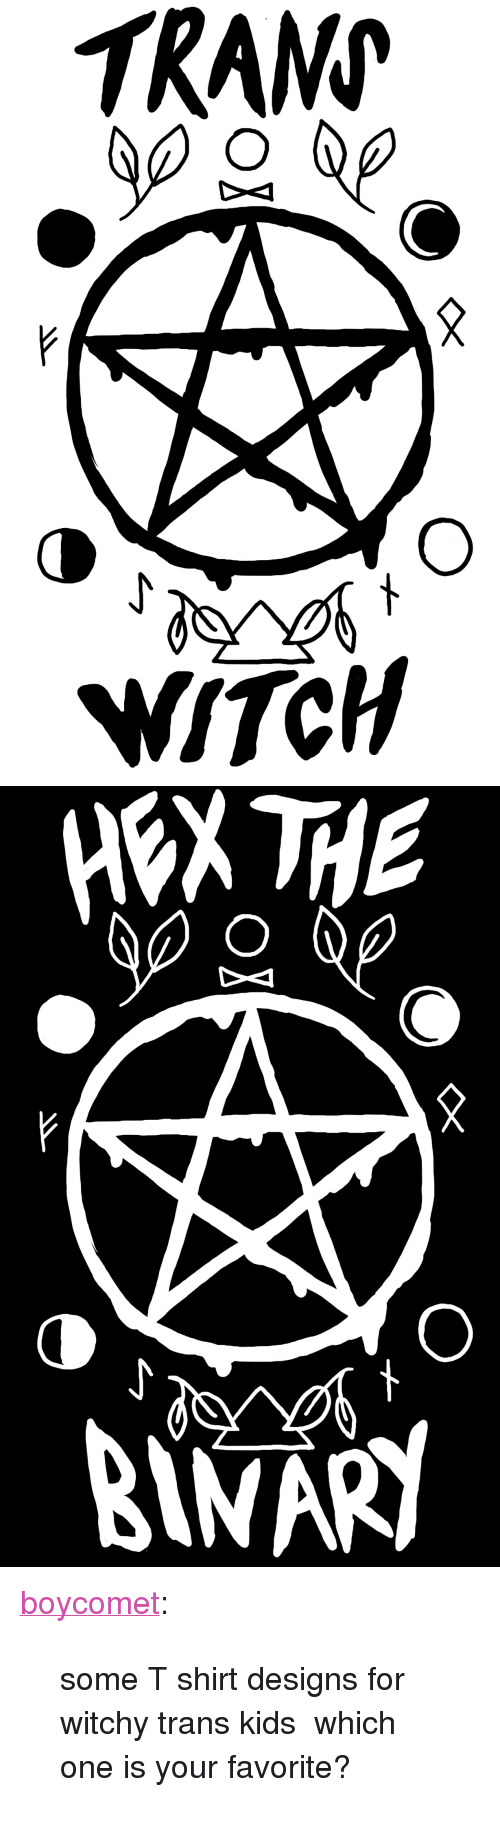 """Tumblr, Blog, and Http: TRAN  WiTCH   NARY <p><a href=""""http://boycomet.tumblr.com/post/146001695487/some-t-shirt-designs-for-witchy-trans-kids-which"""" class=""""tumblr_blog"""">boycomet</a>:</p><blockquote><p>some T shirt designs for witchy trans kids☆ which one is your favorite?</p></blockquote>"""